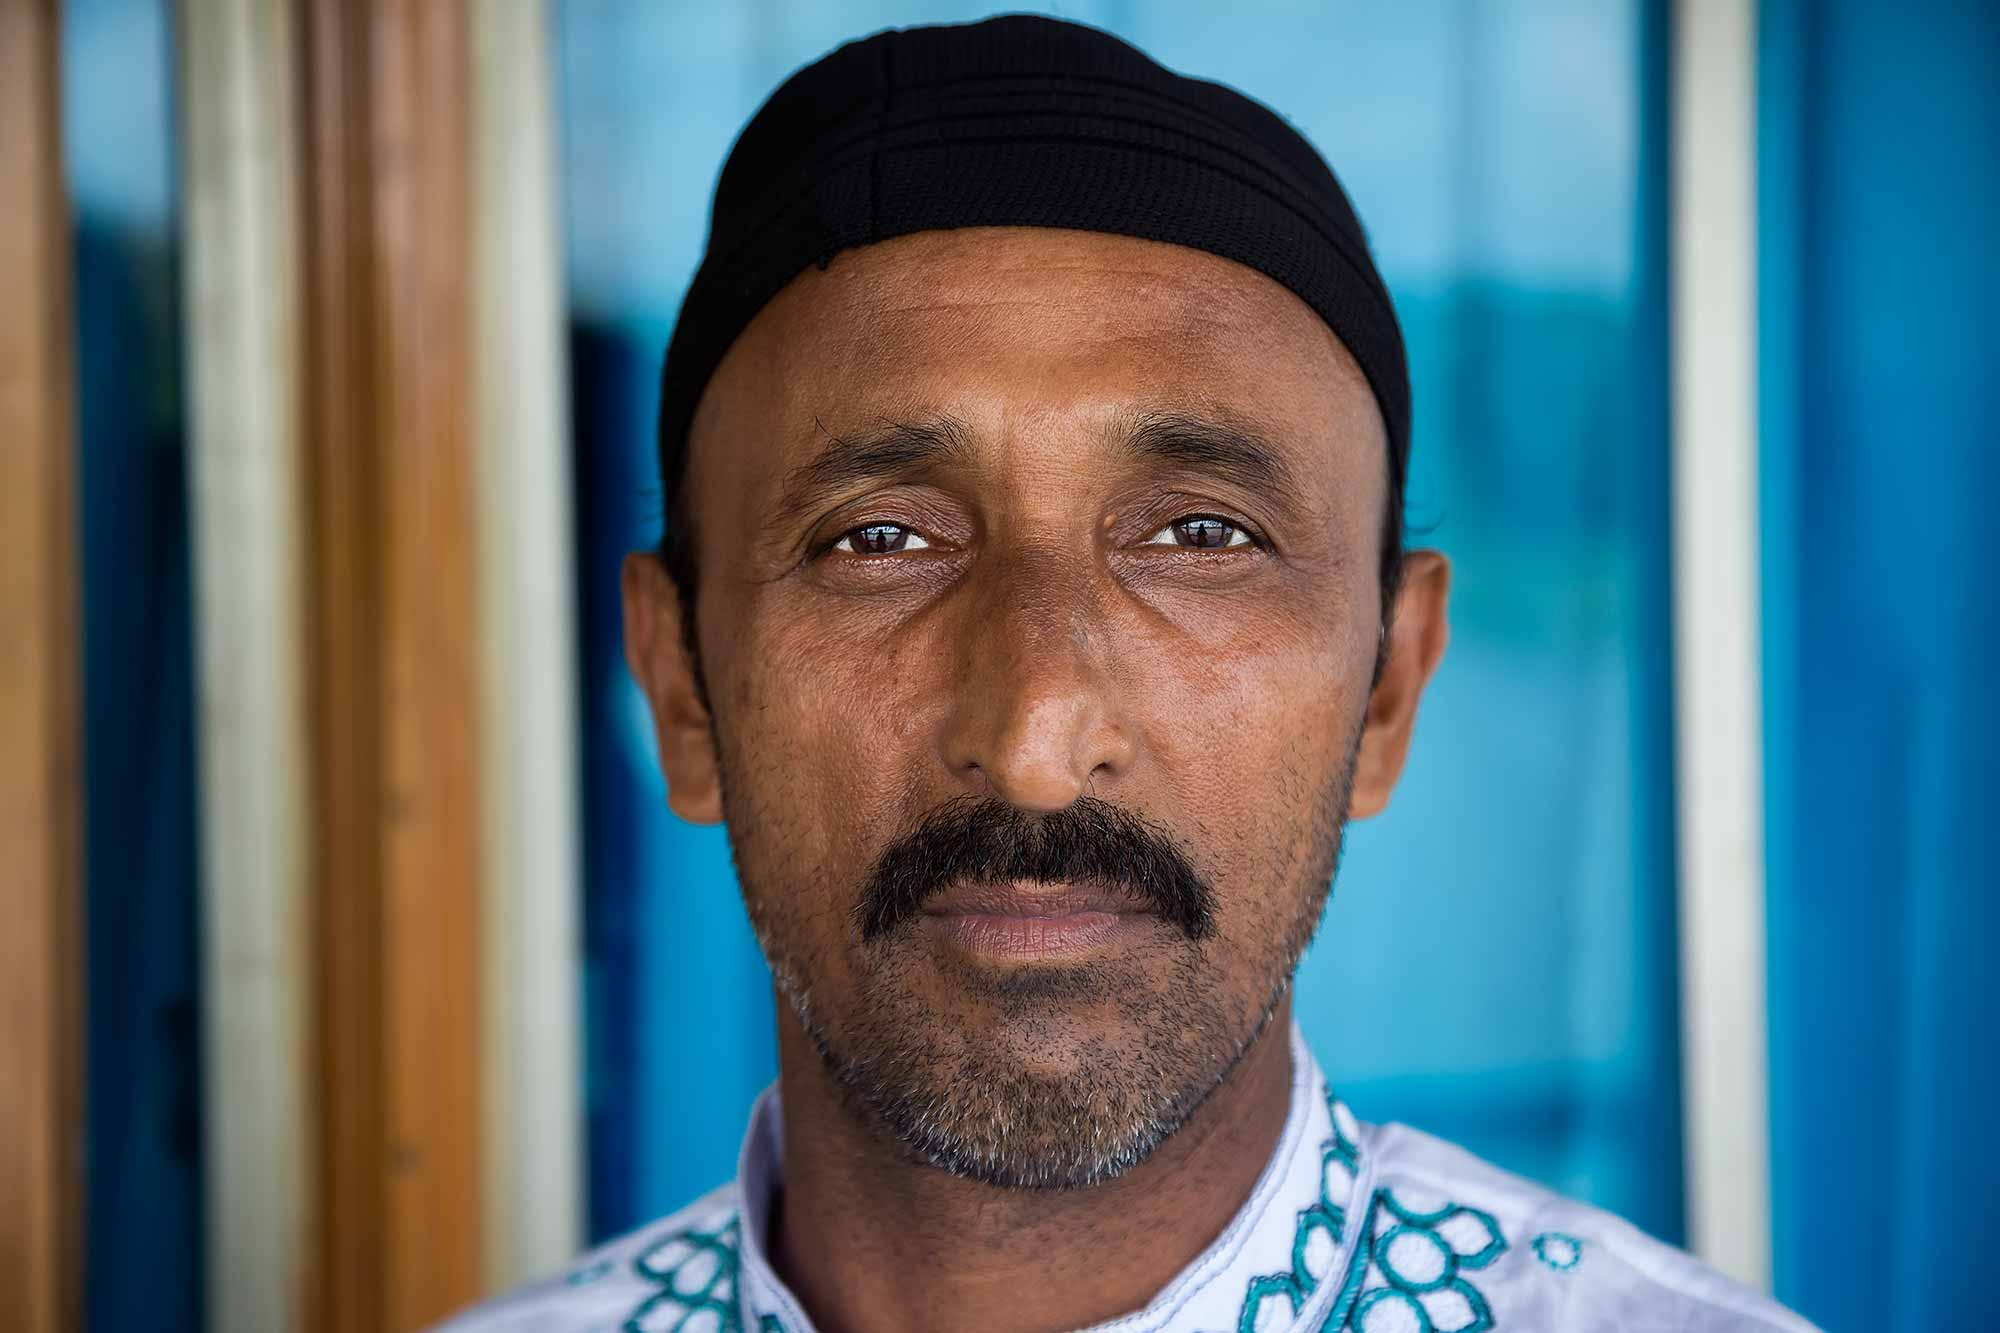 Portrait of a traveller at the Galachipa launch terminal, Bangladesh. © Ulli Maier & Nisa Maier